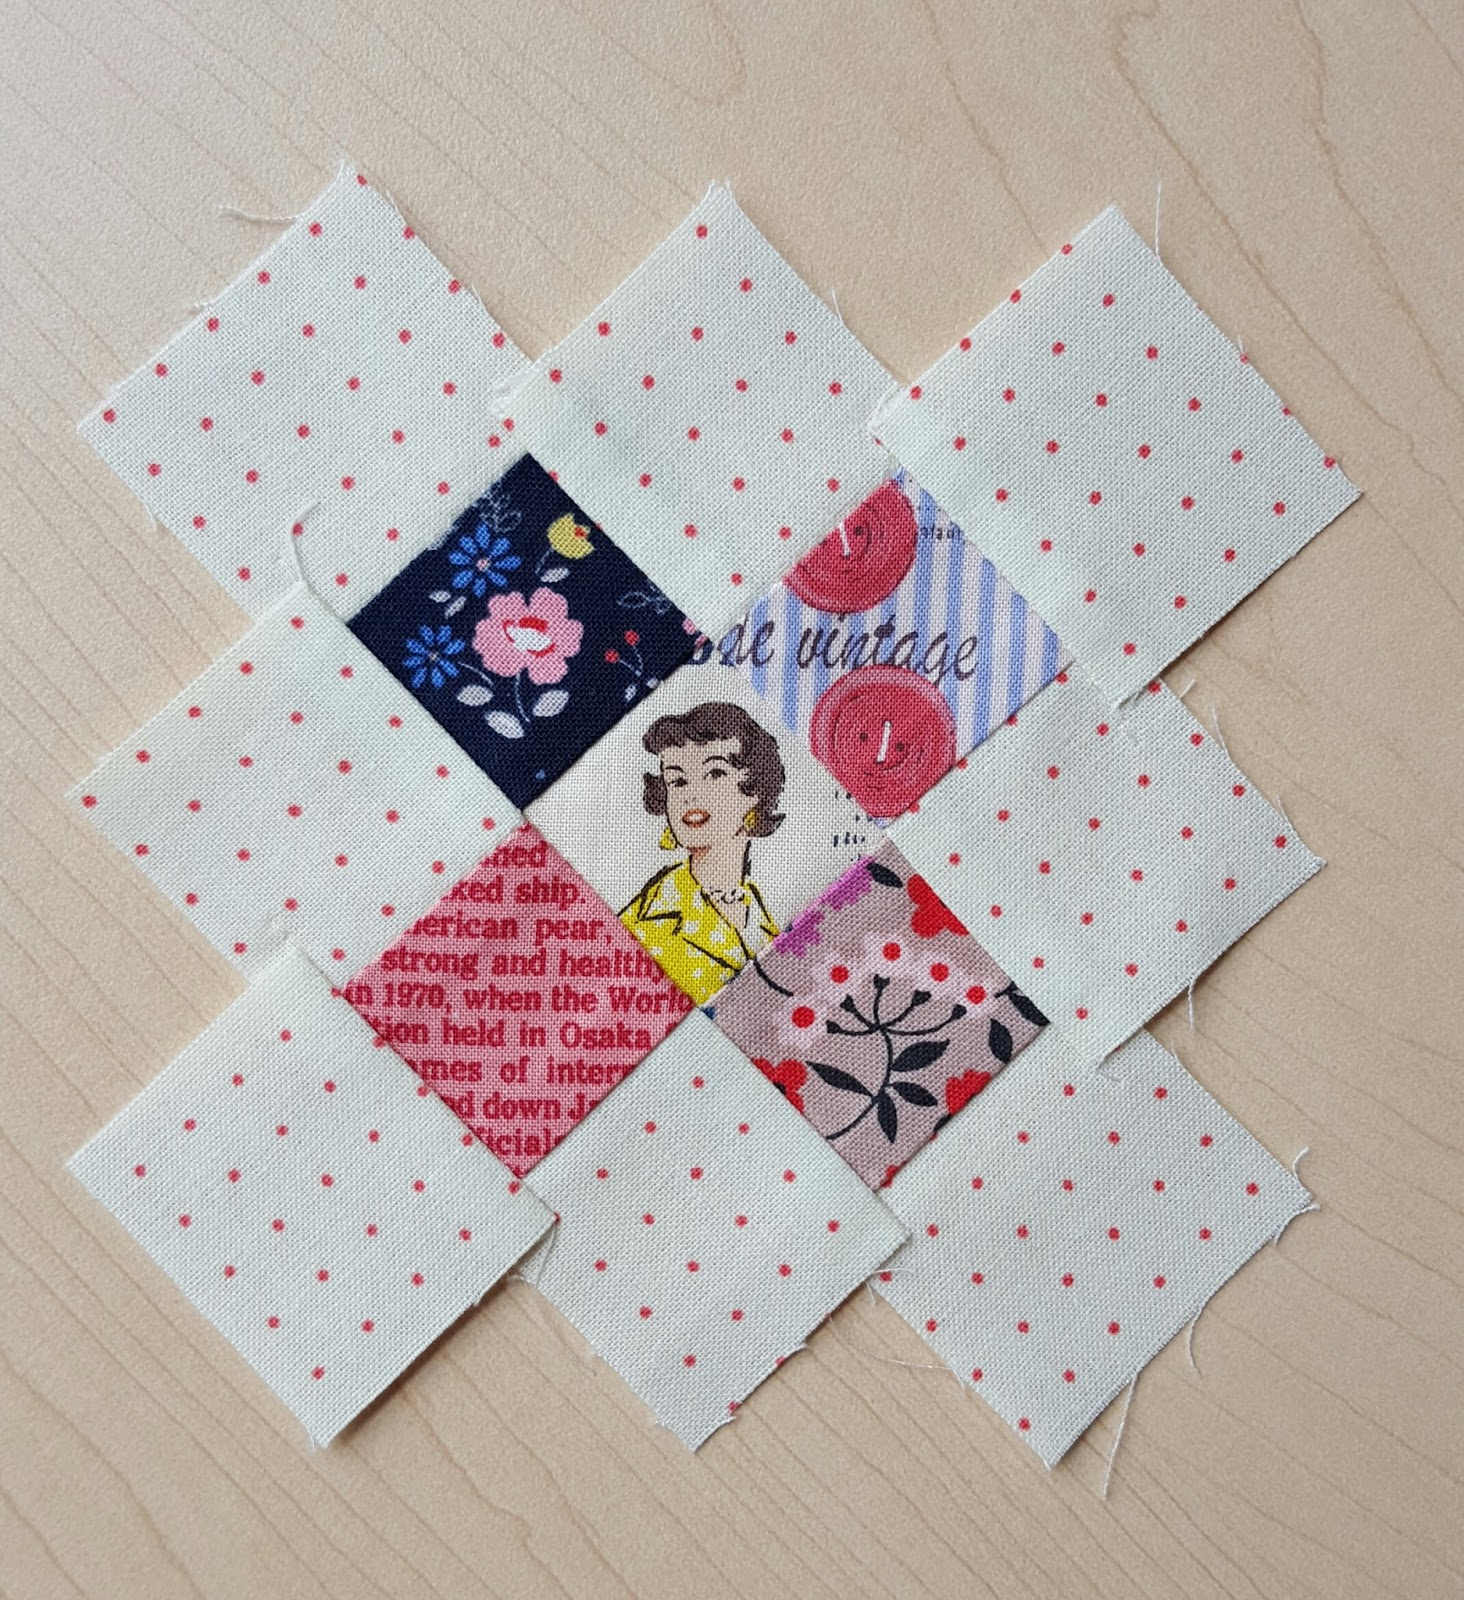 Sew the squares together in rows.